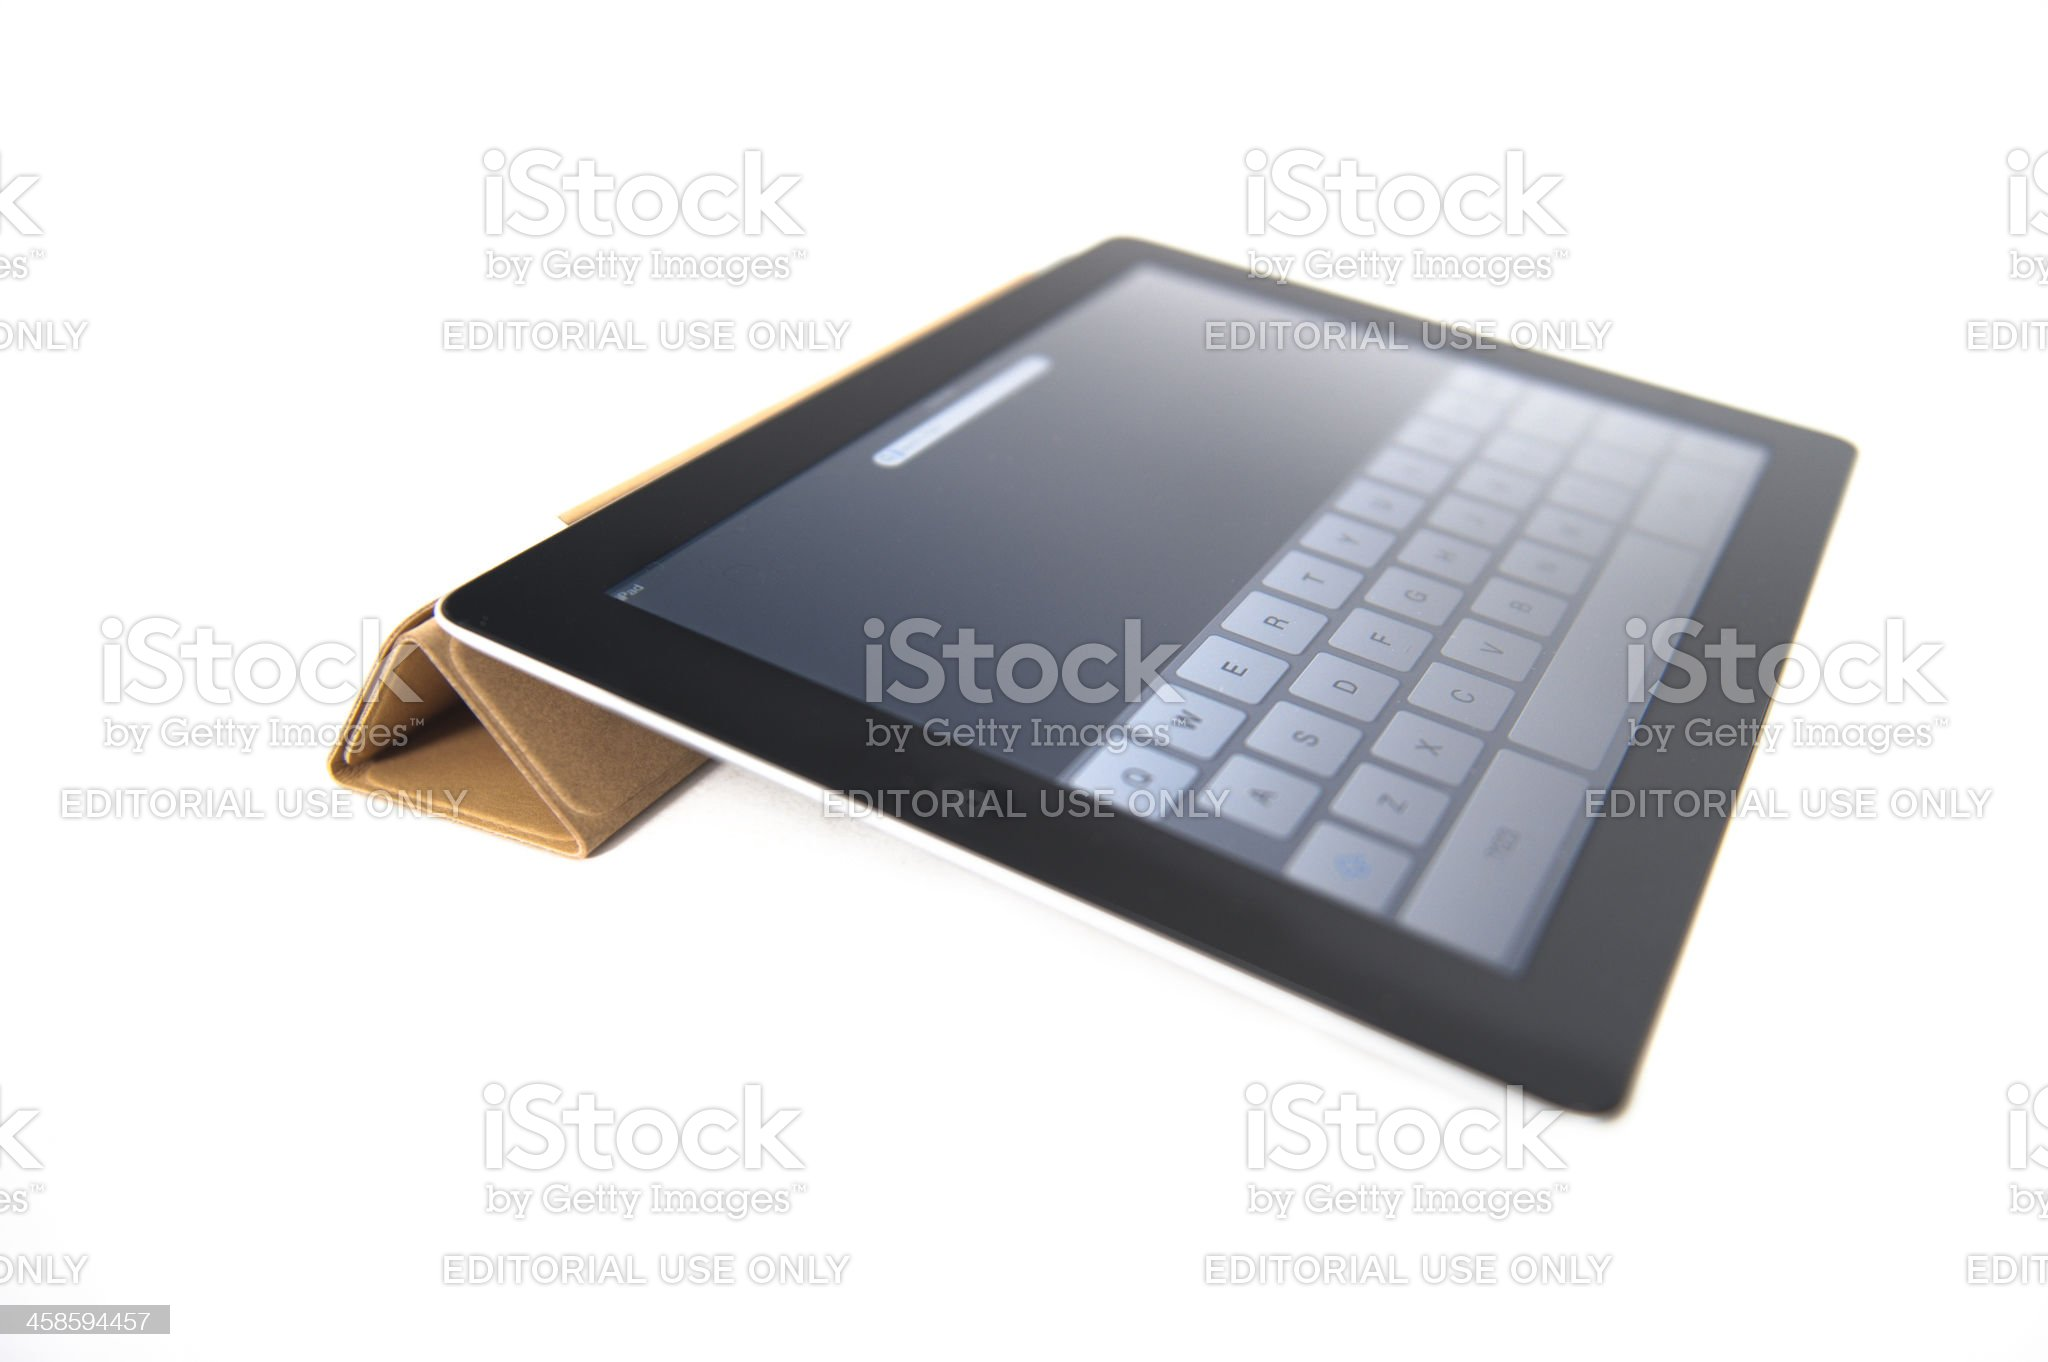 Apple Ipad 2 with Brown Leather Smart Cover royalty-free stock photo